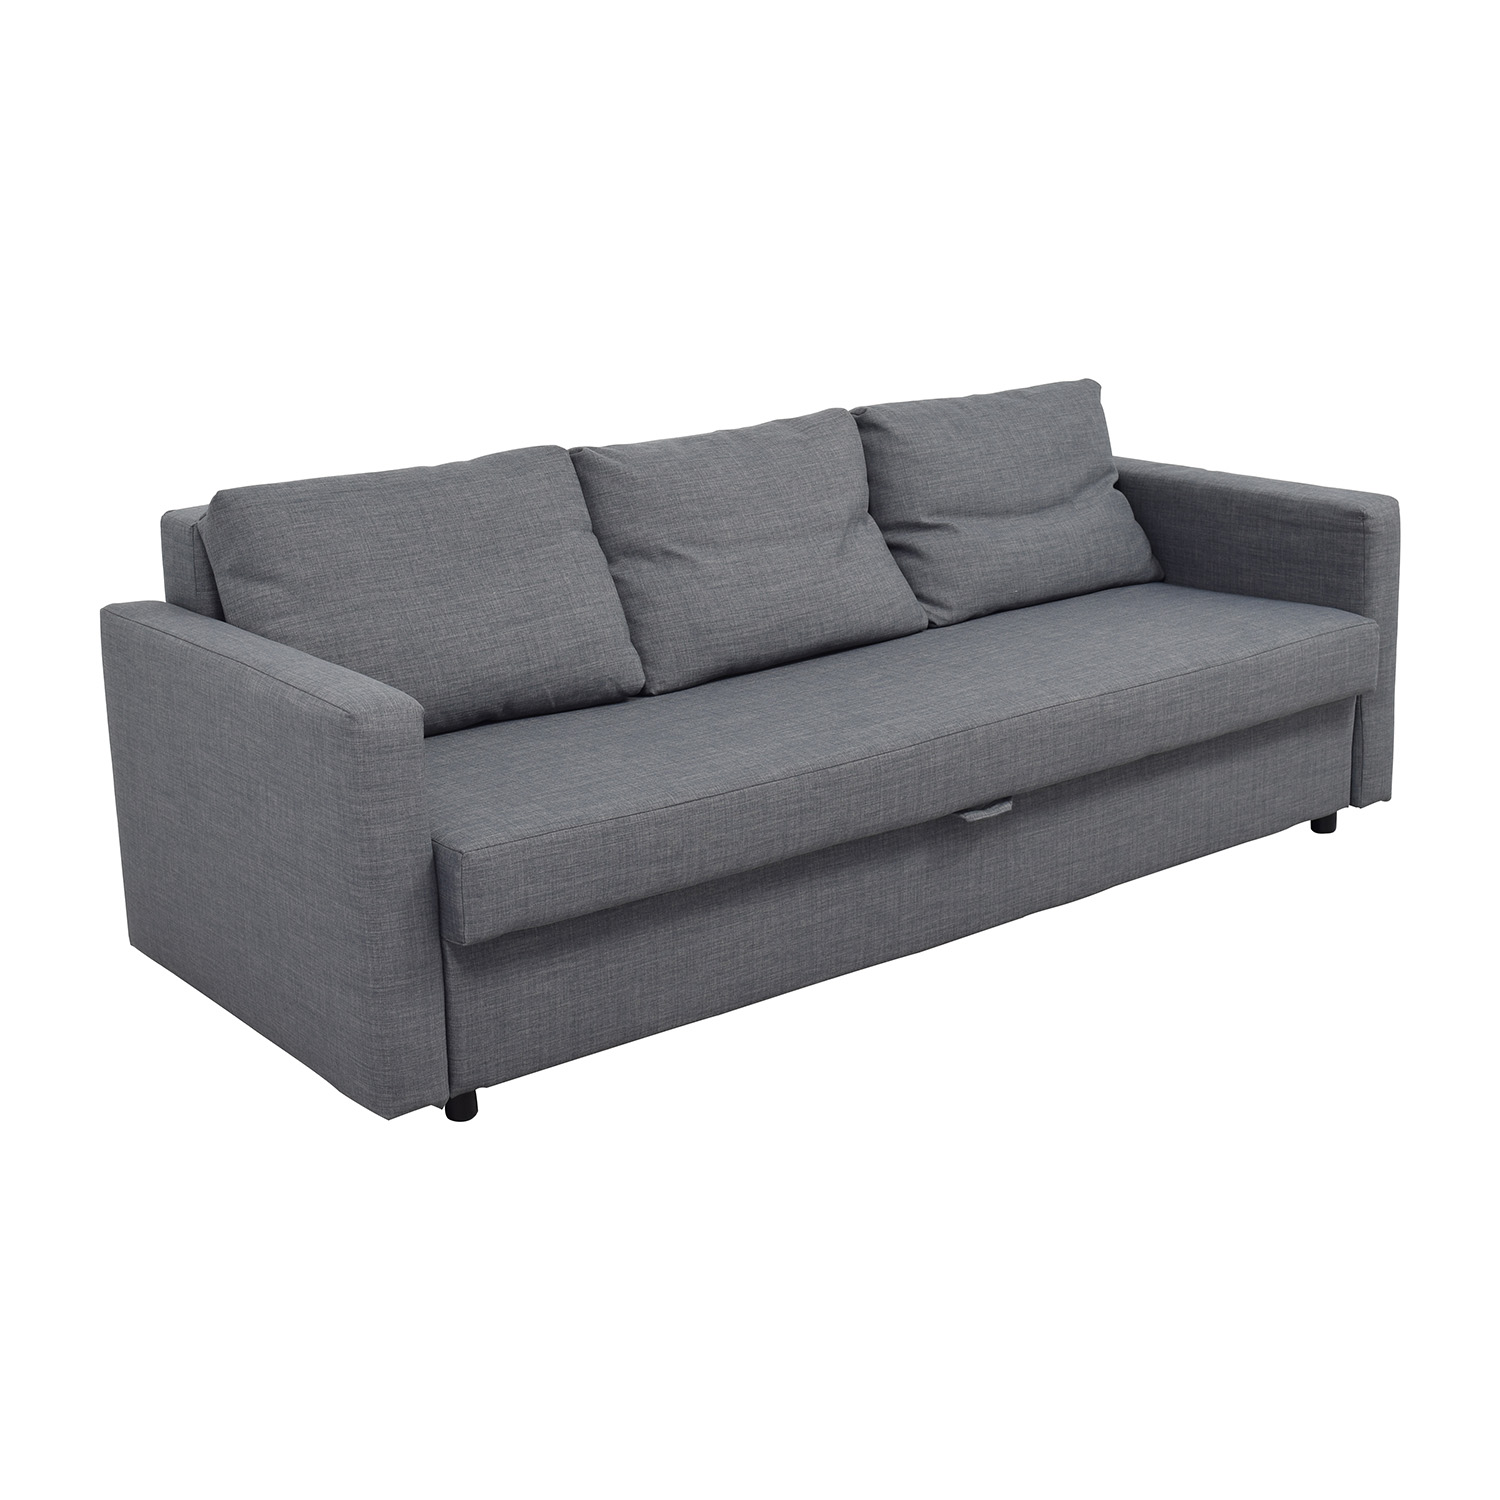 Ikea sofa grey klippan cover two seat sofa flackarp medium for Ikea gray sofa